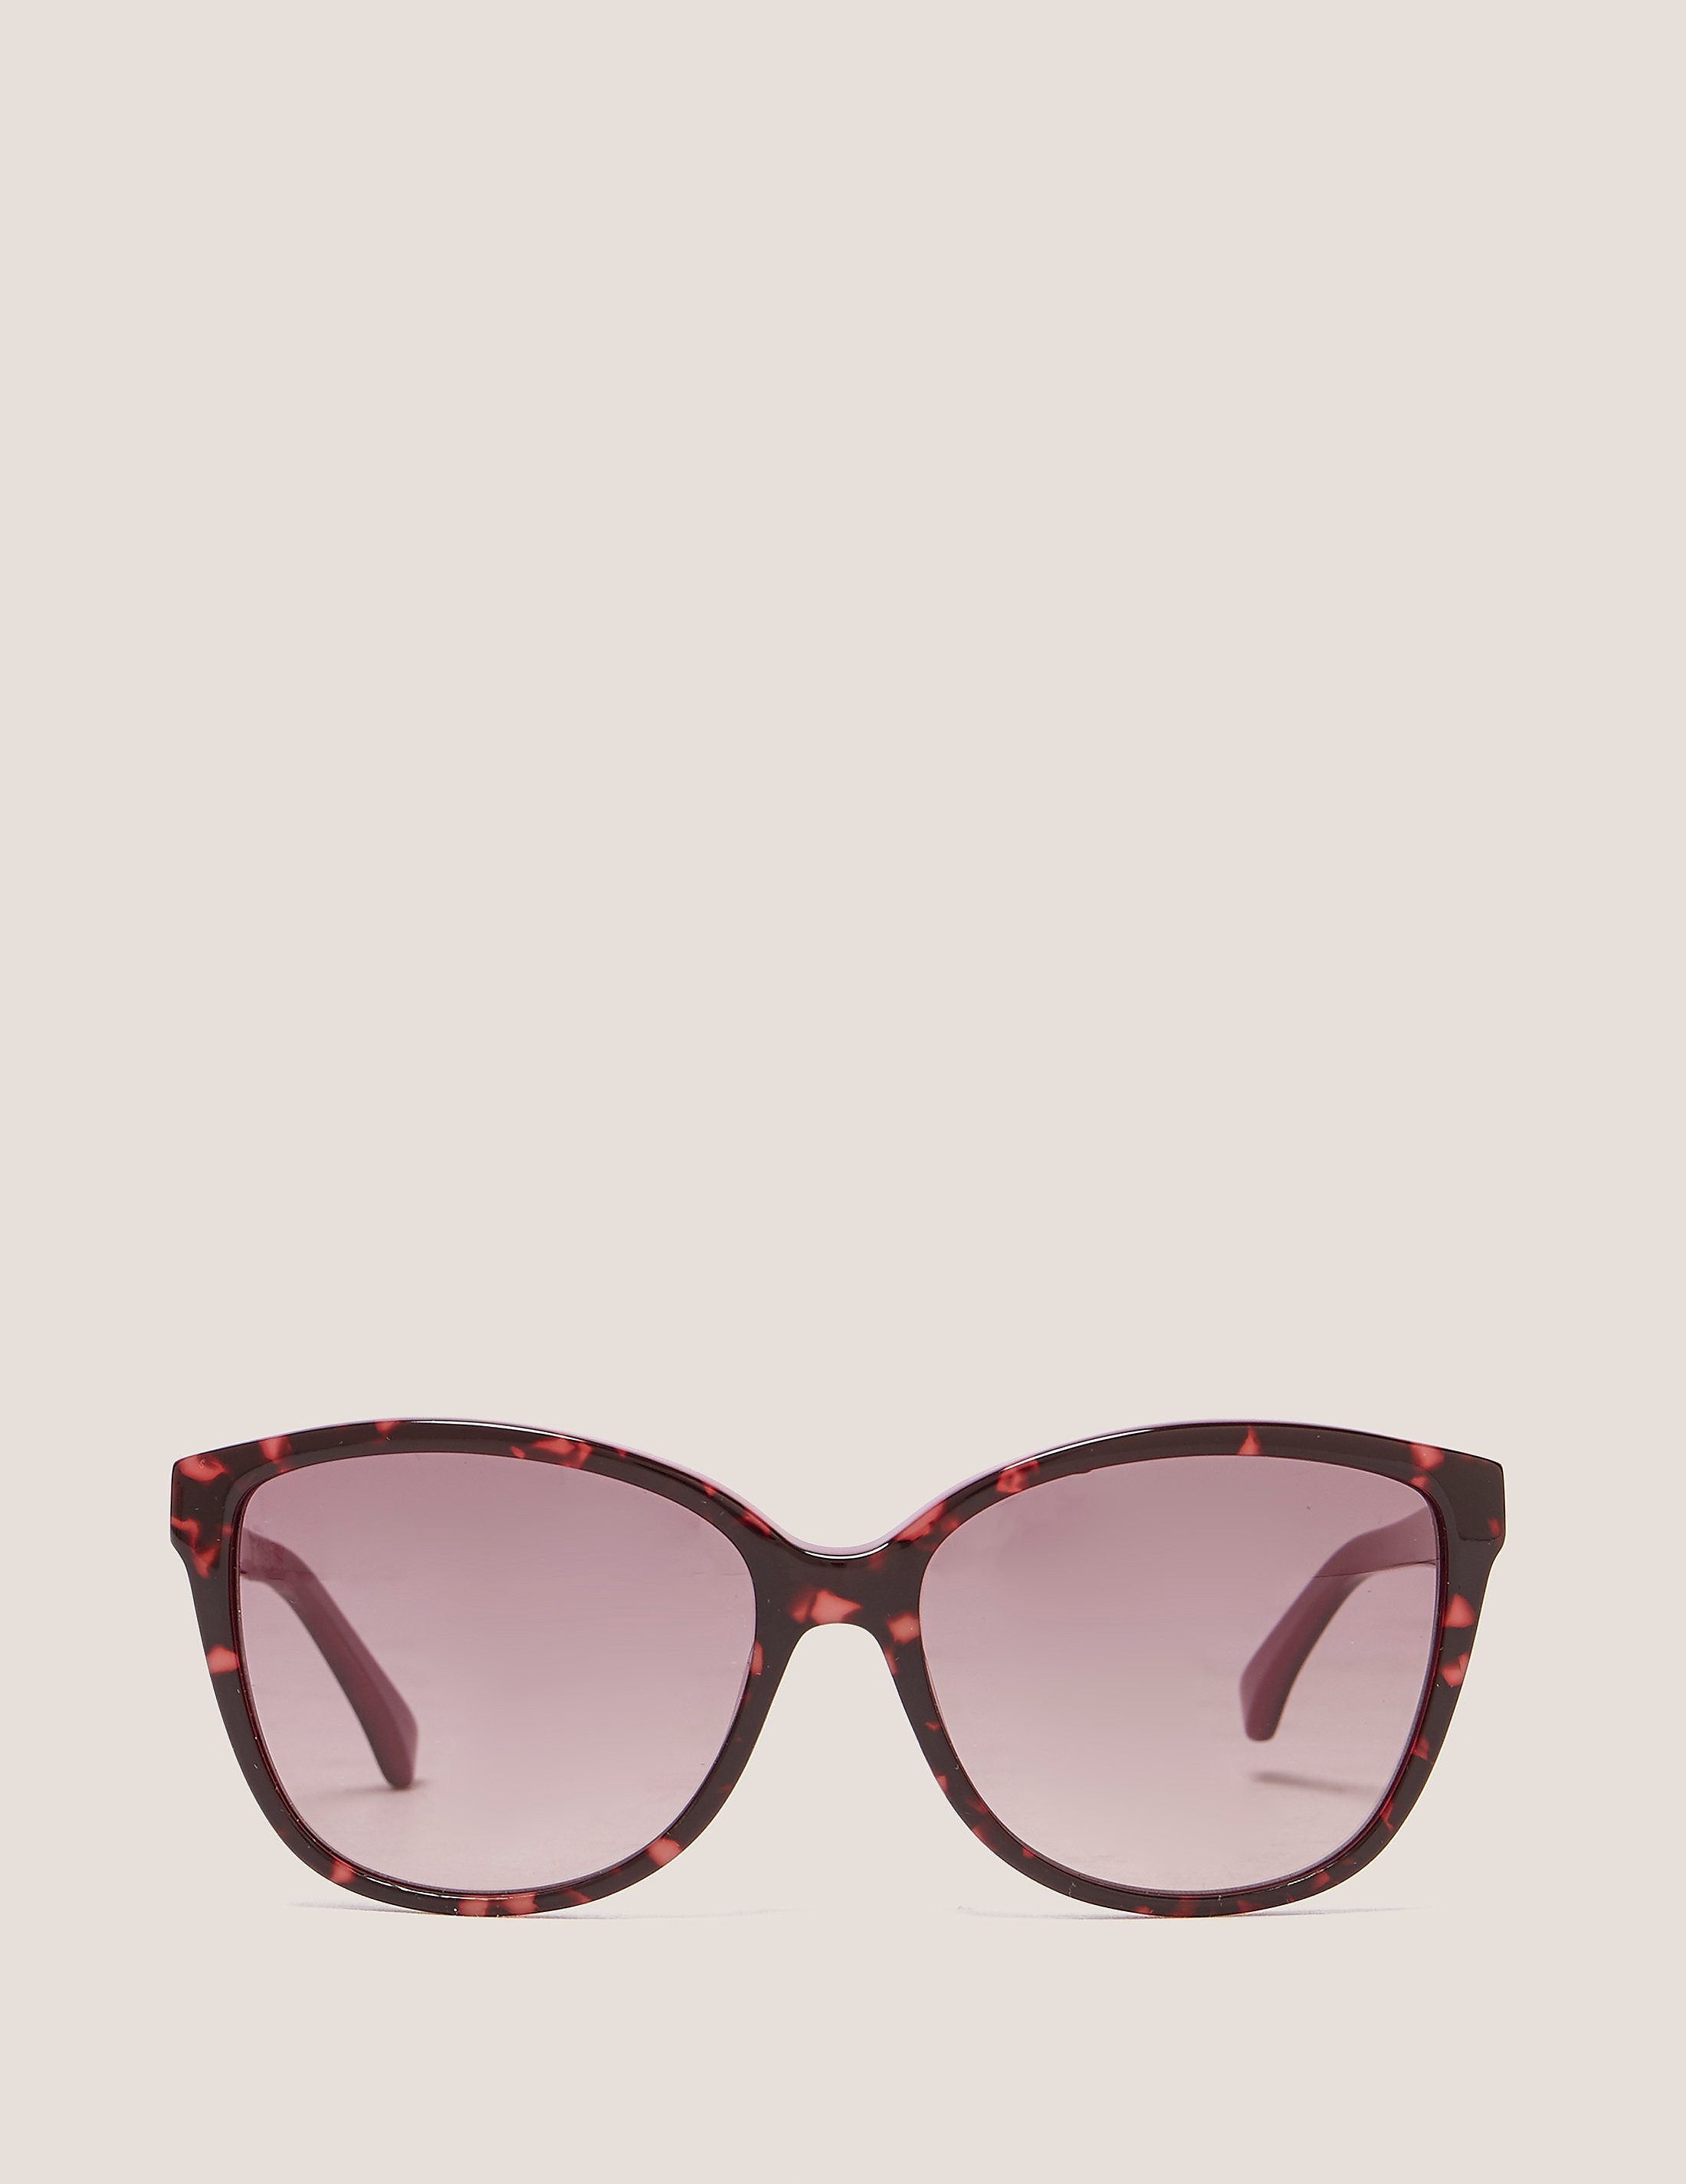 Calvin Klein Teacup Sunglasses